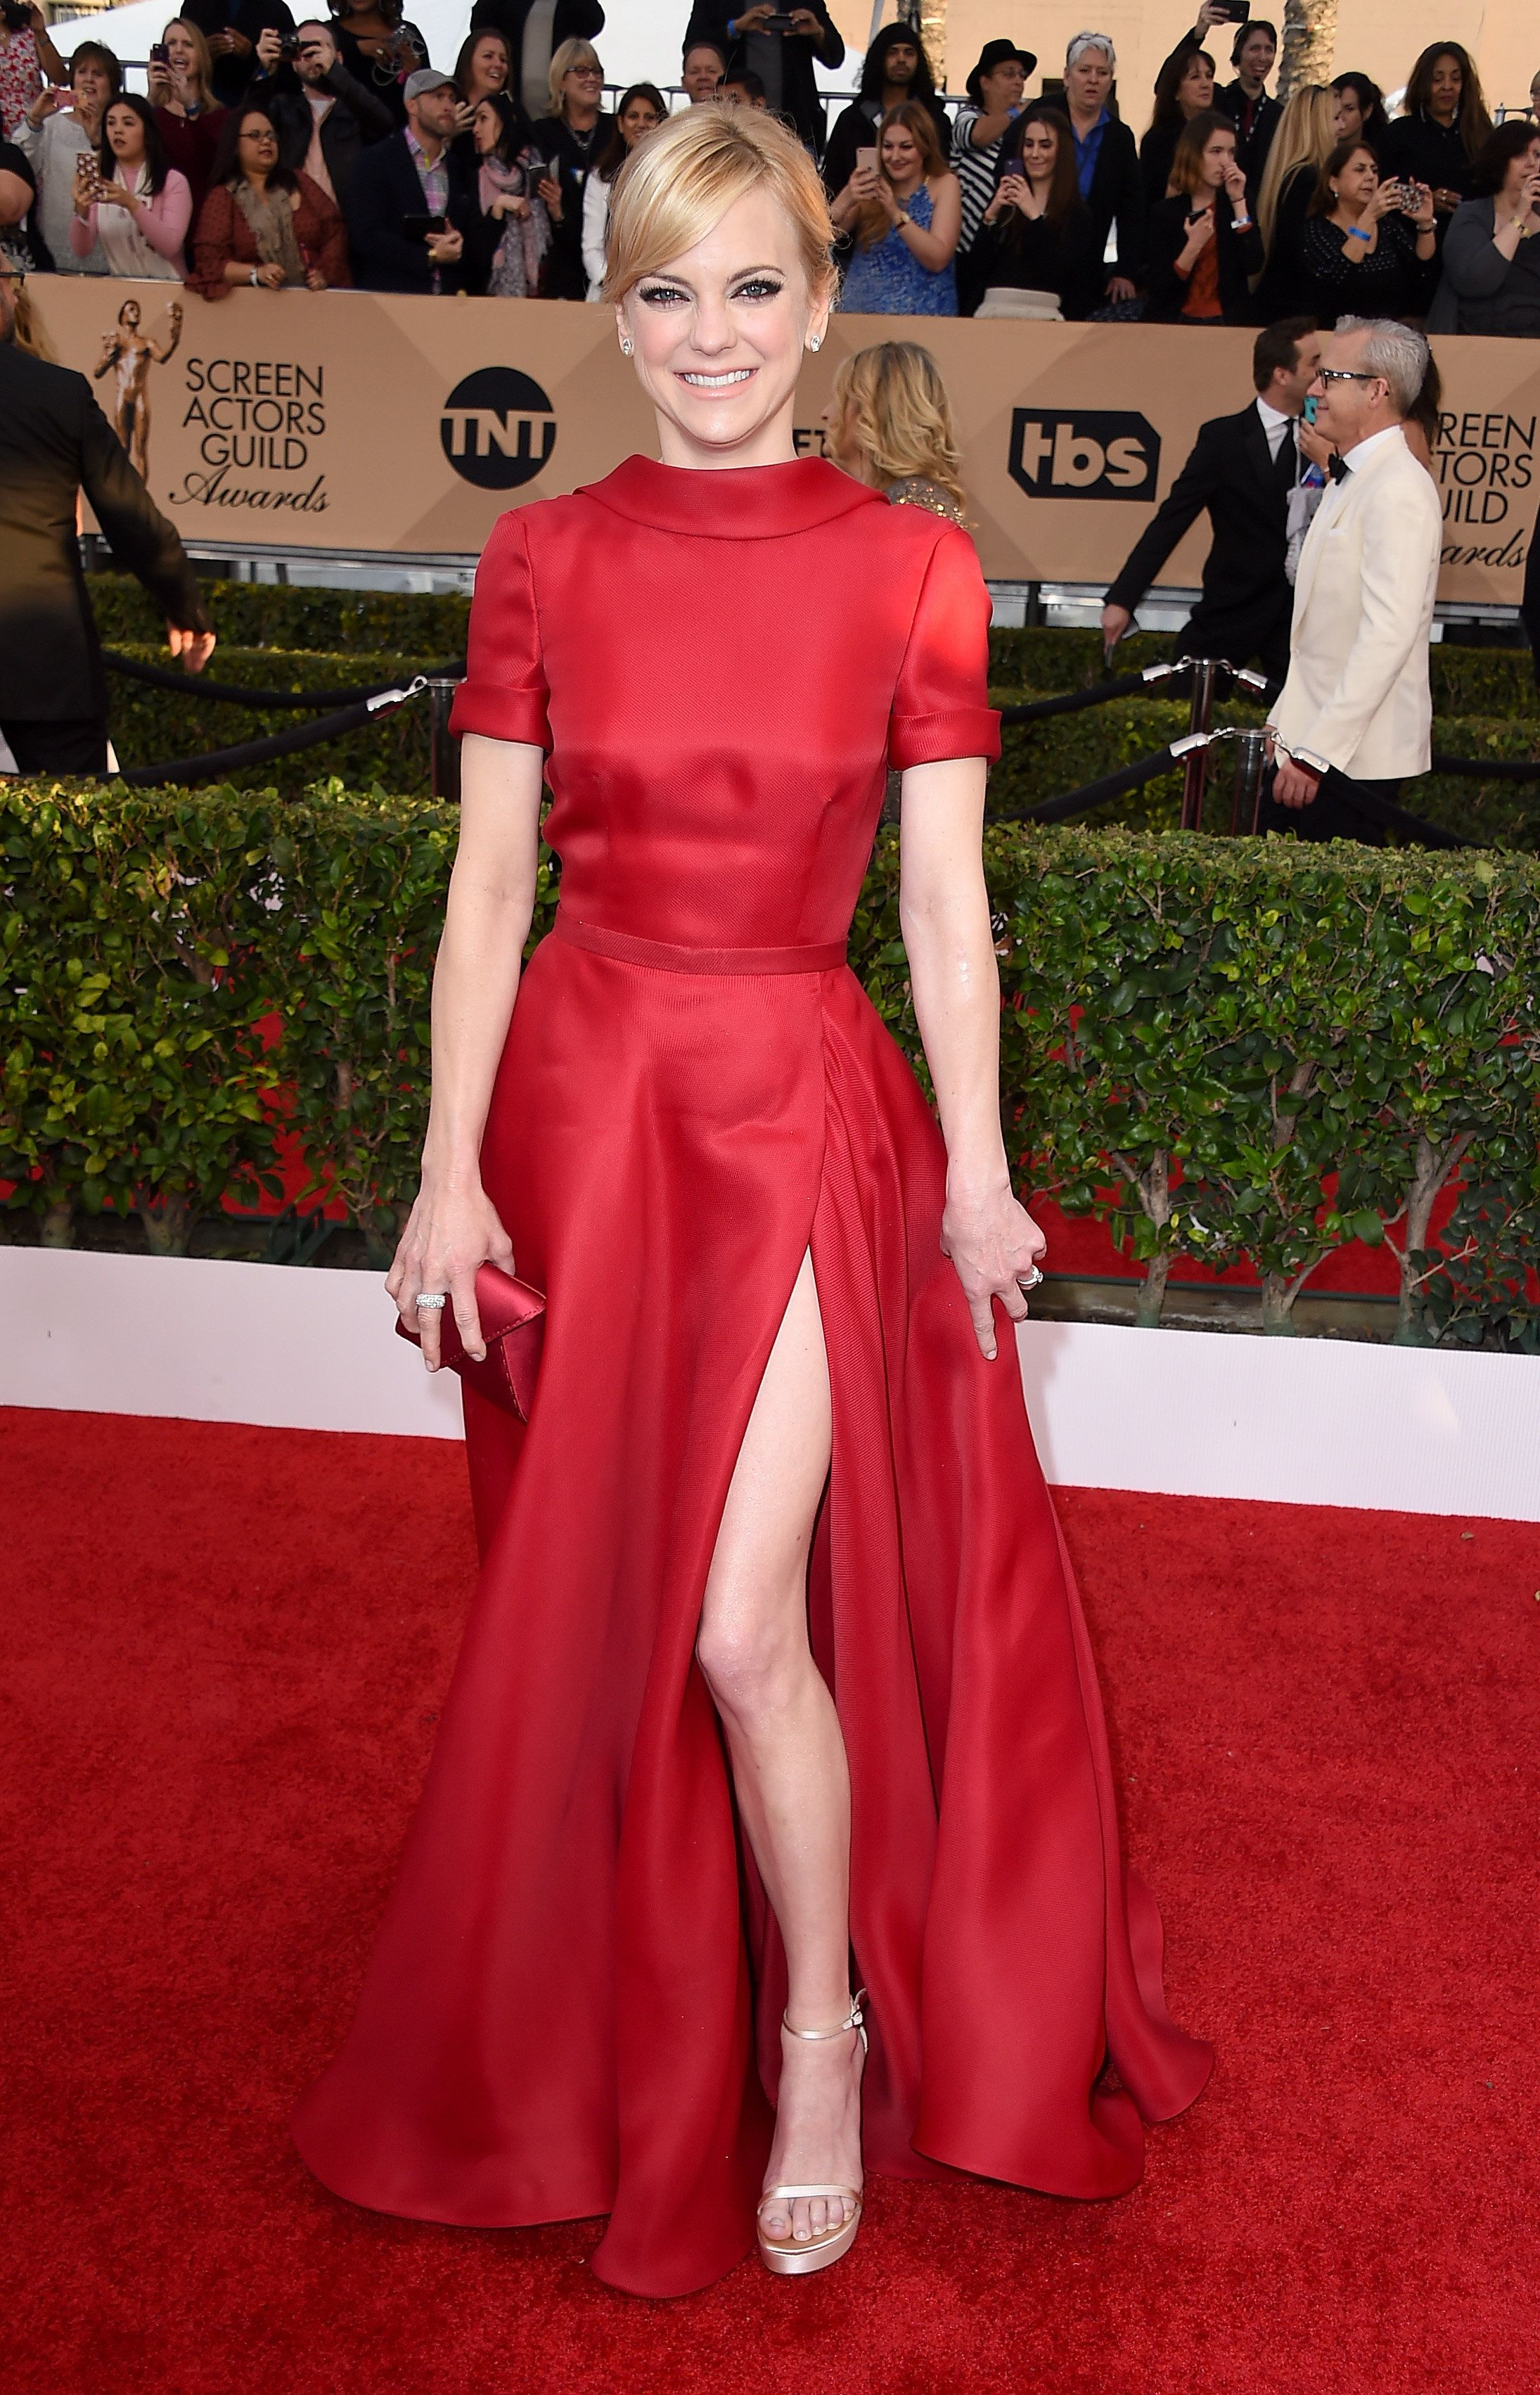 The SAG Awards Red Carpet 2016 Check Out All The Stunning